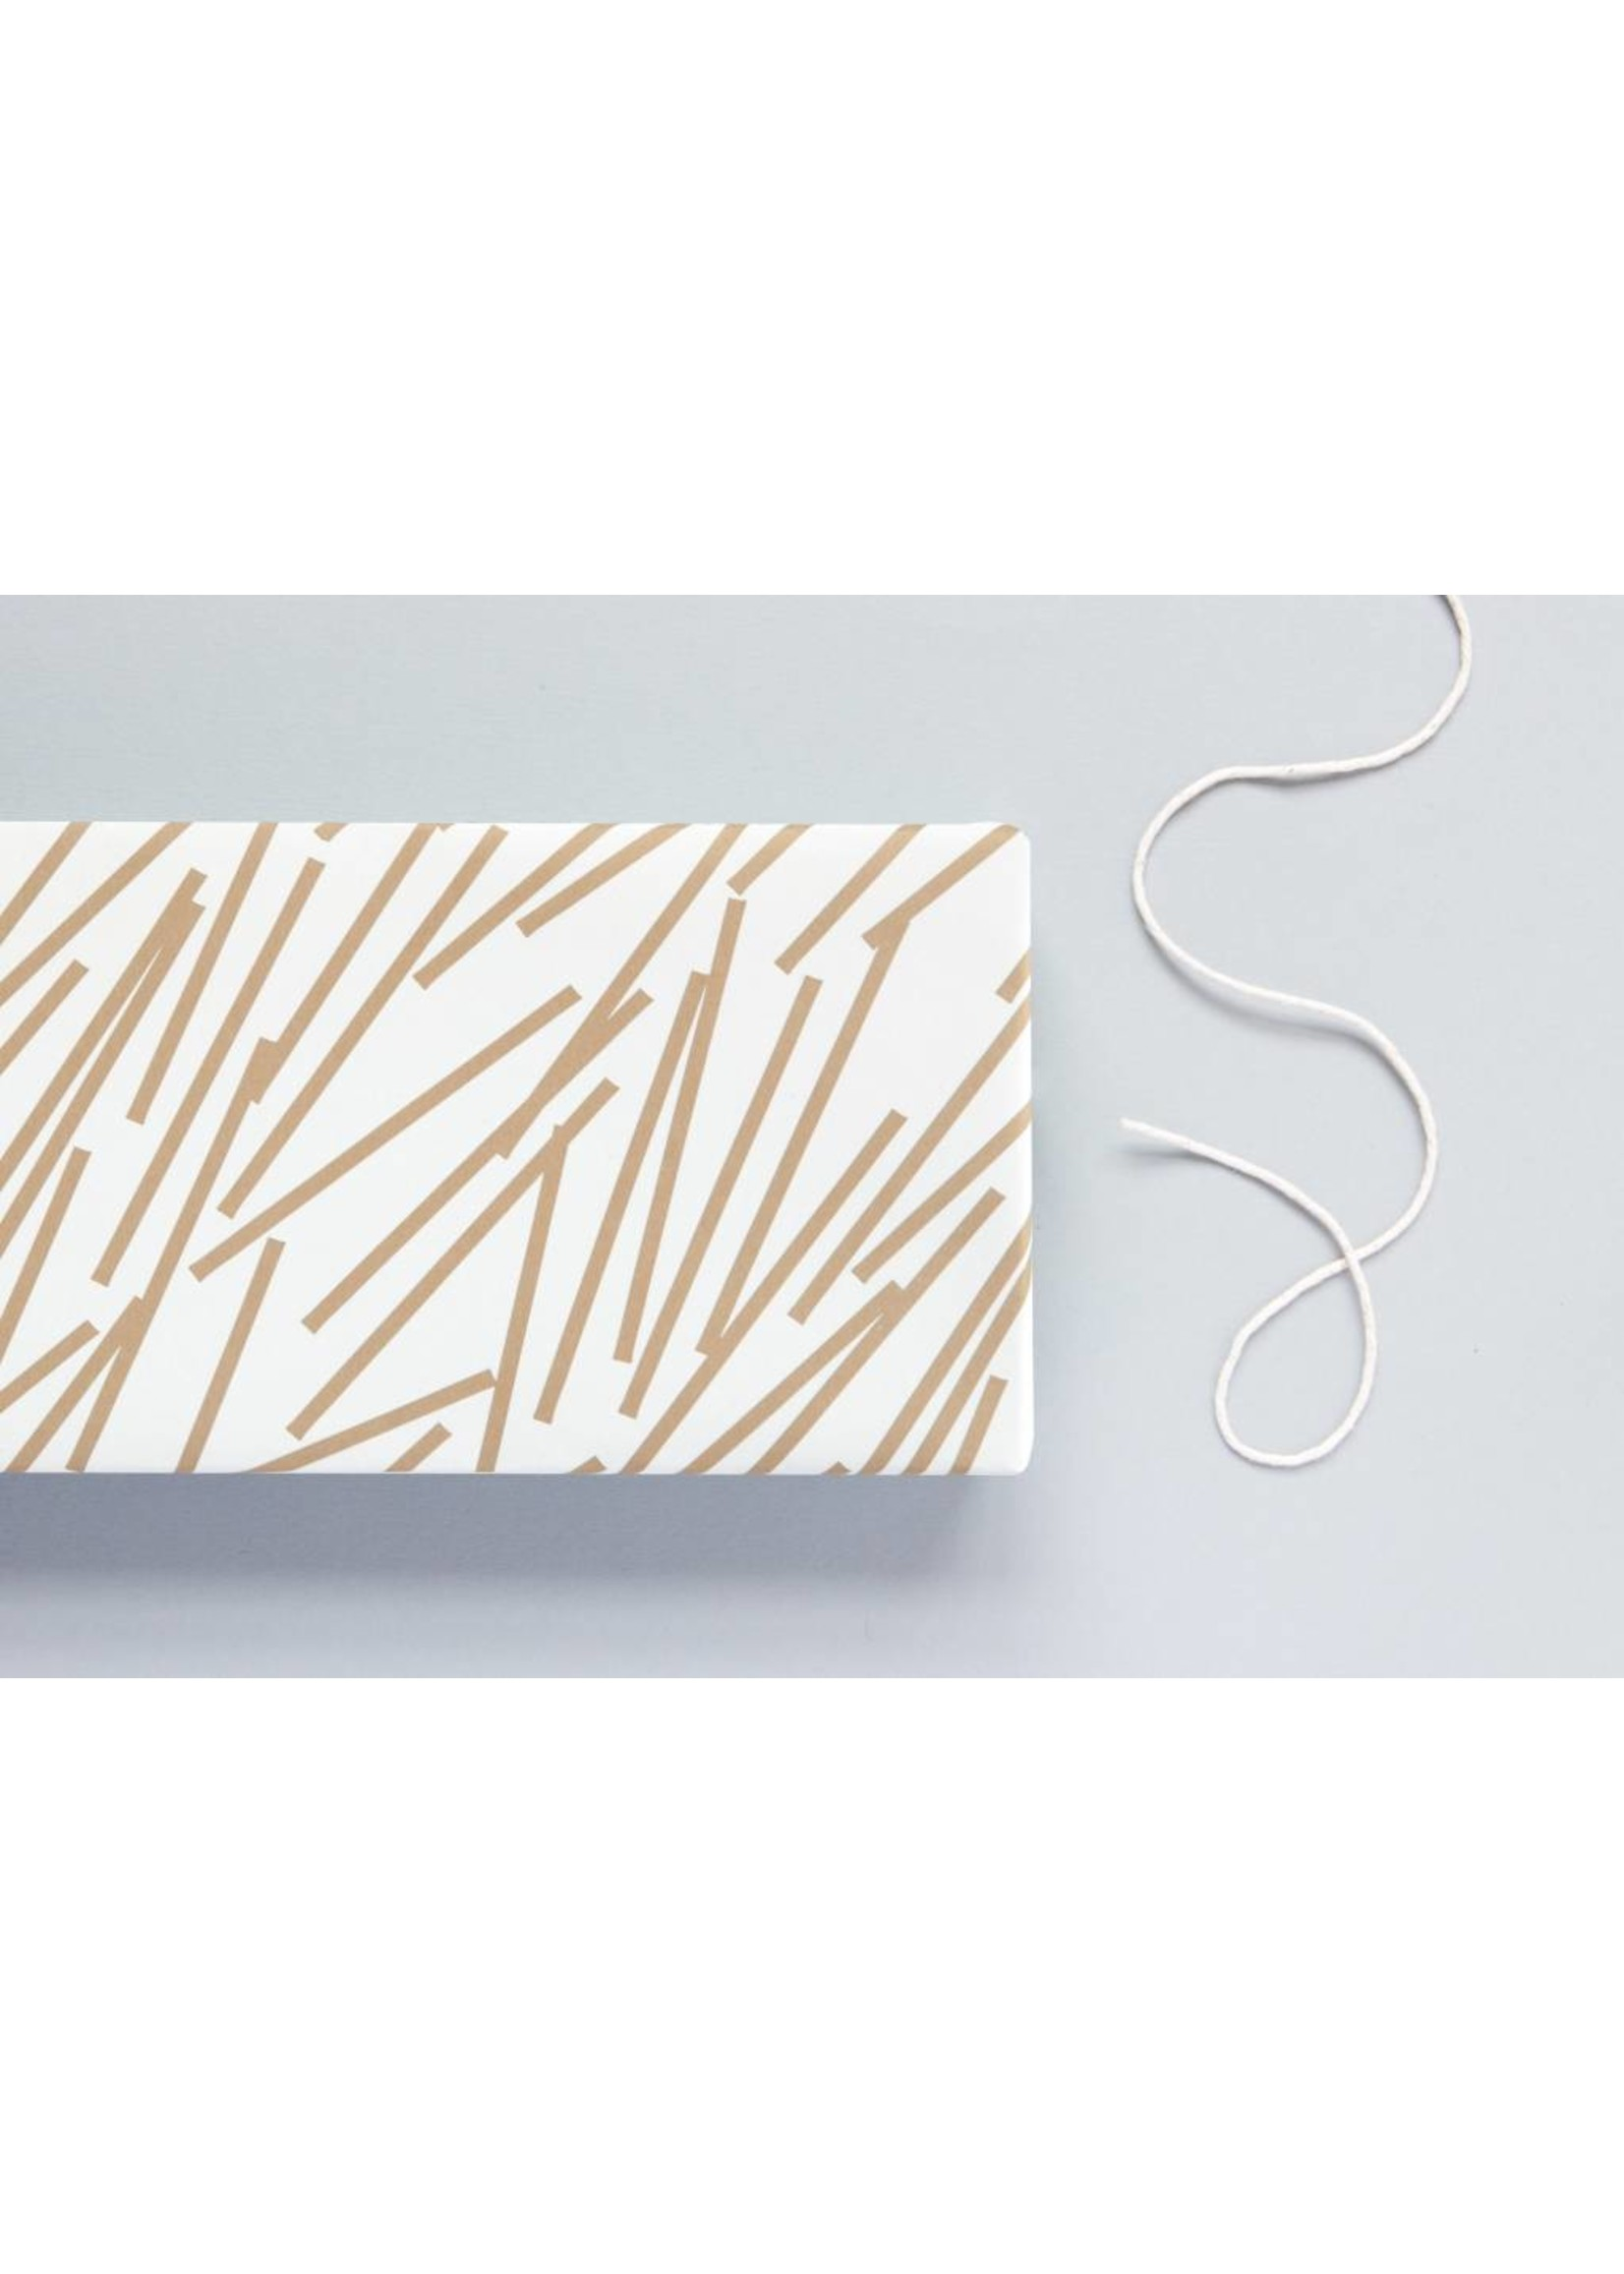 Ola Ola Patterned Papers: Lines Print, Gold